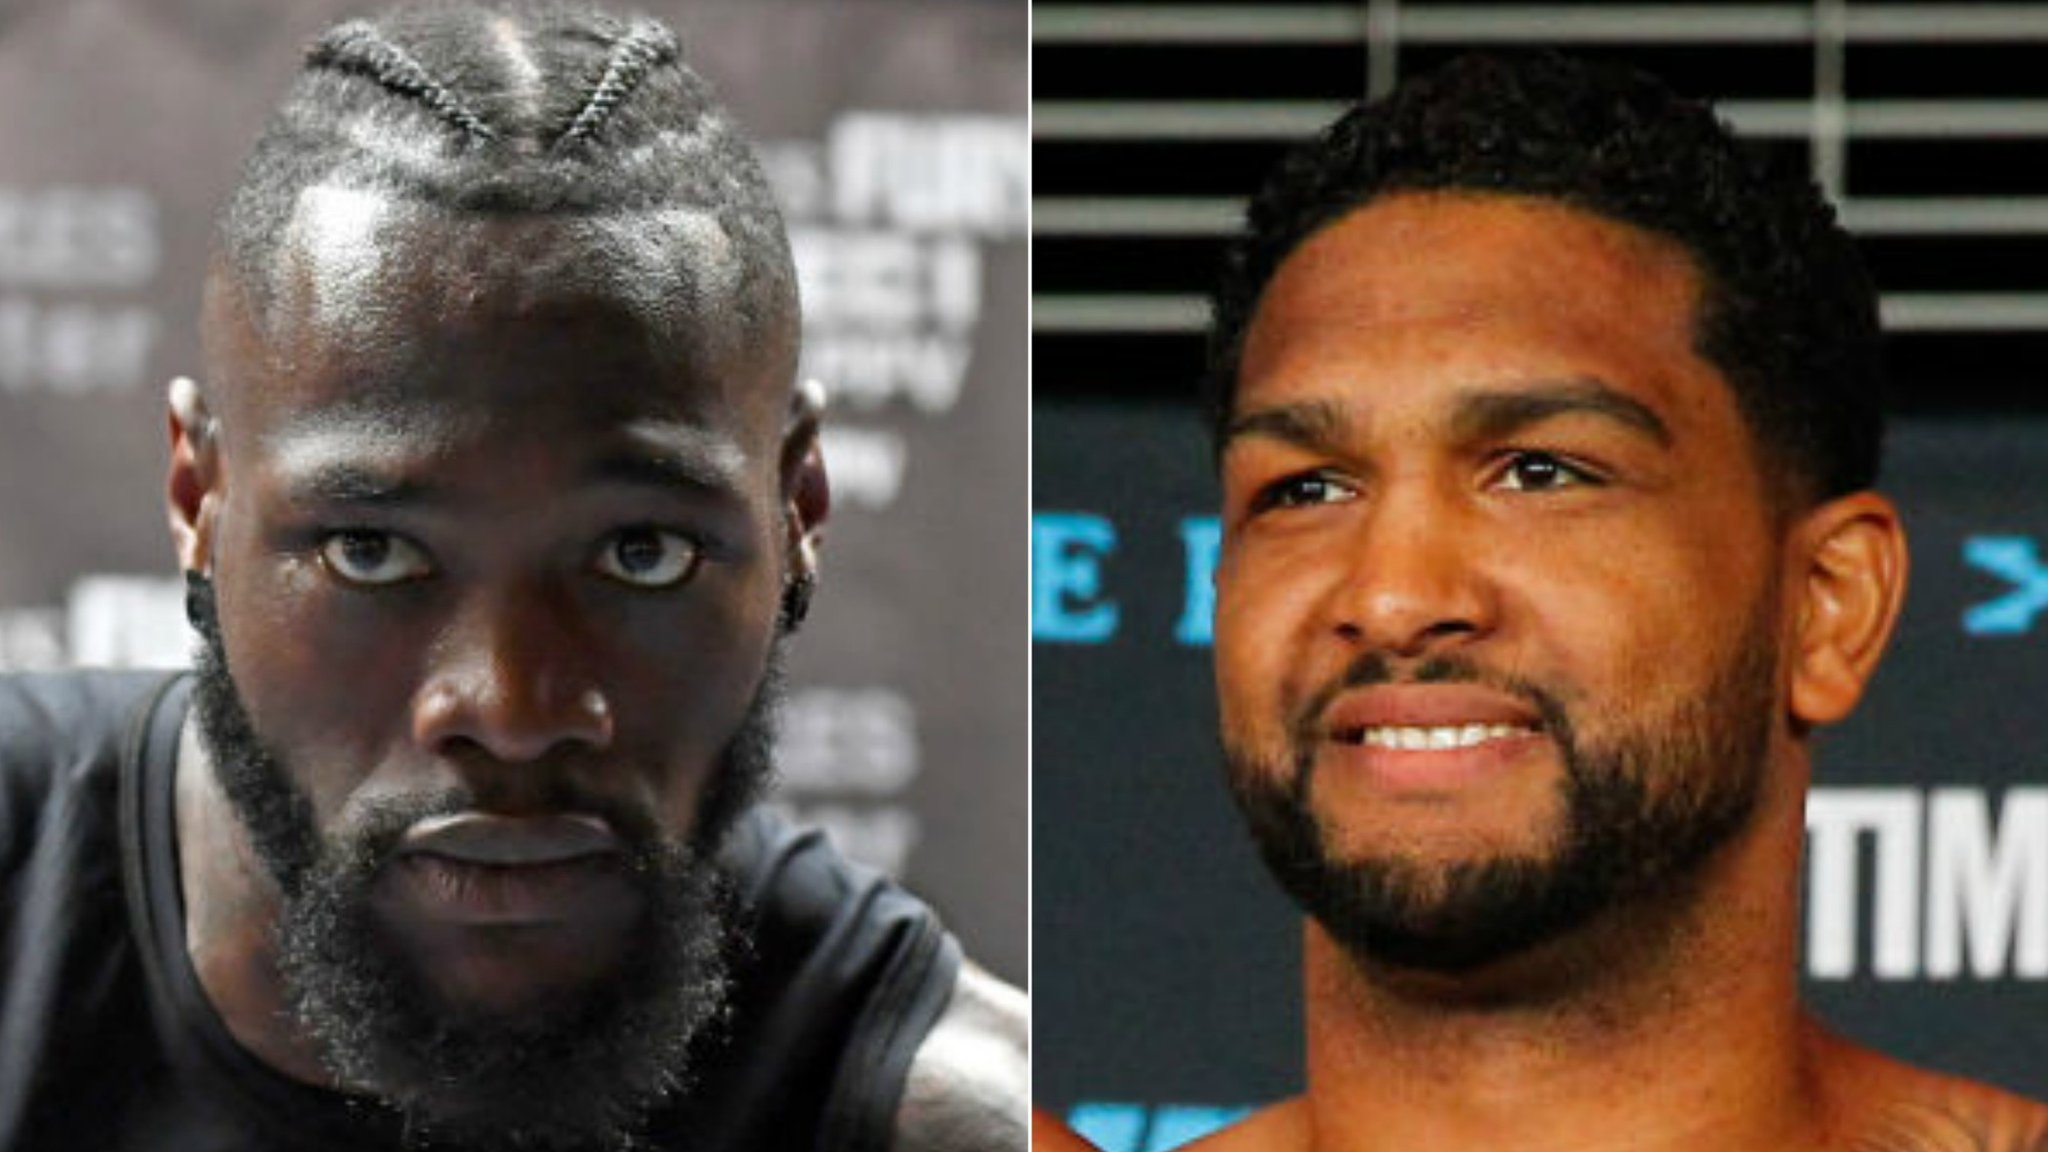 Deontay Wilder: World champion to defend title against Dominic Breazeale in May